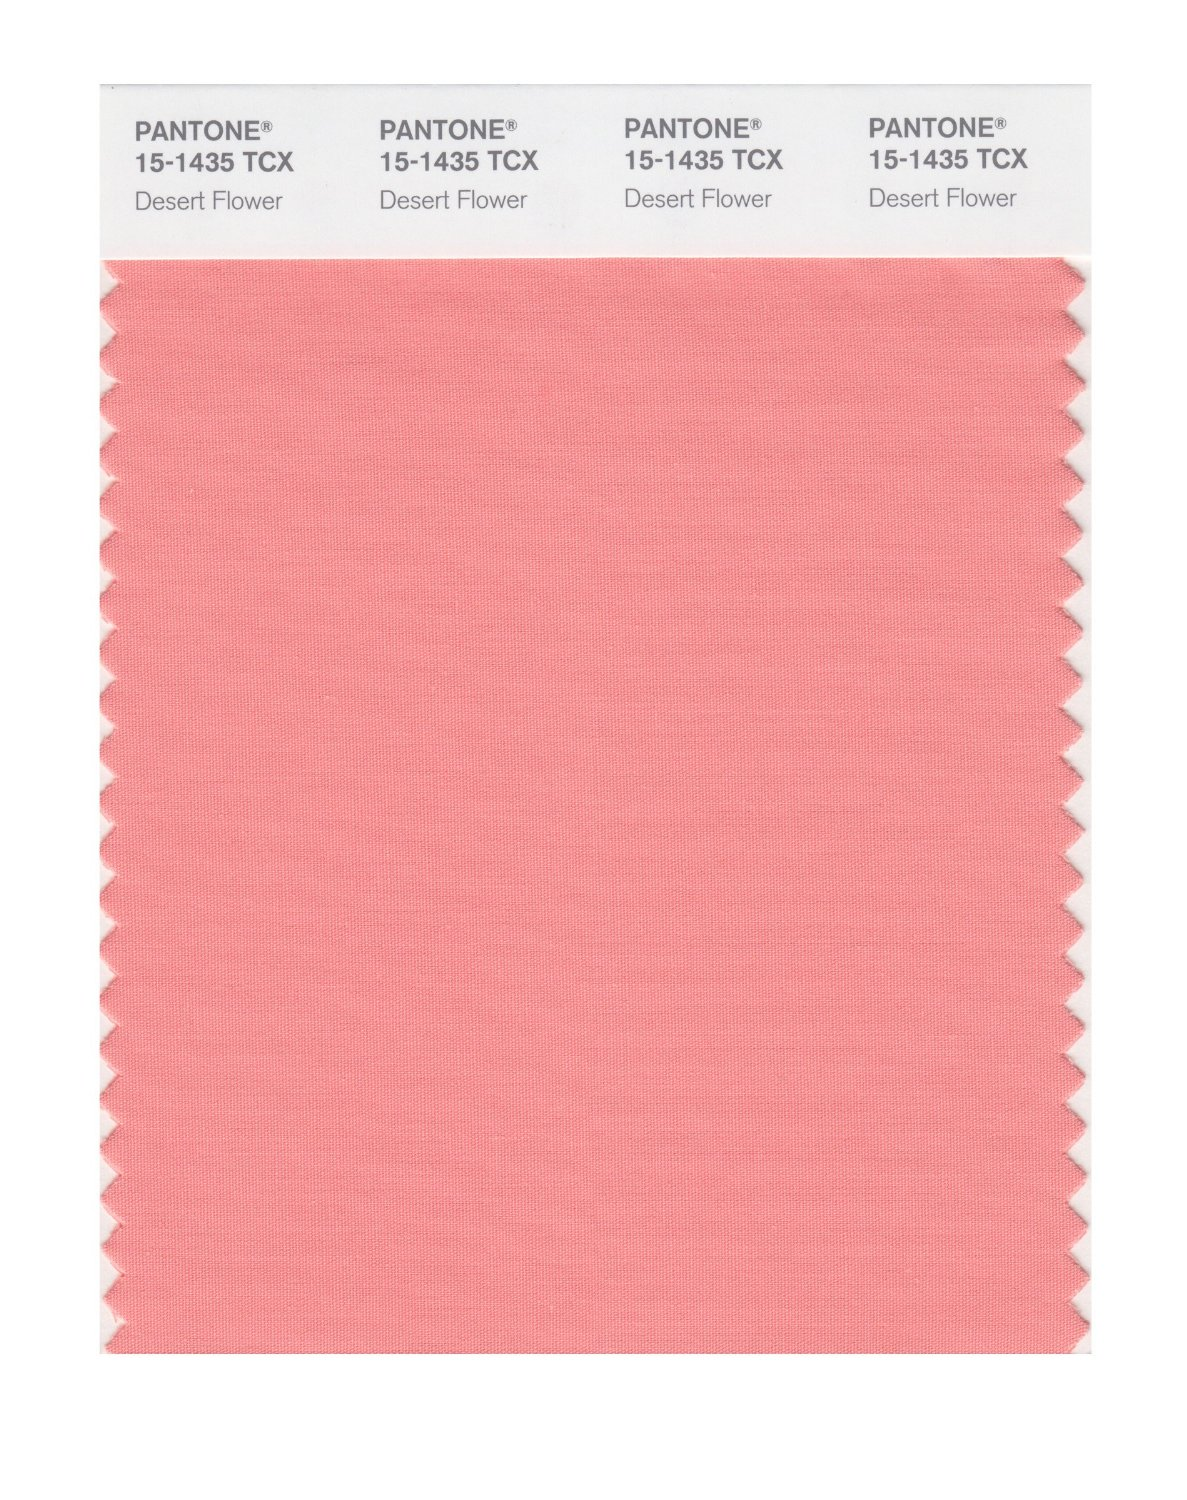 Pantone Smart Swatch 15-1435 Desert Flower